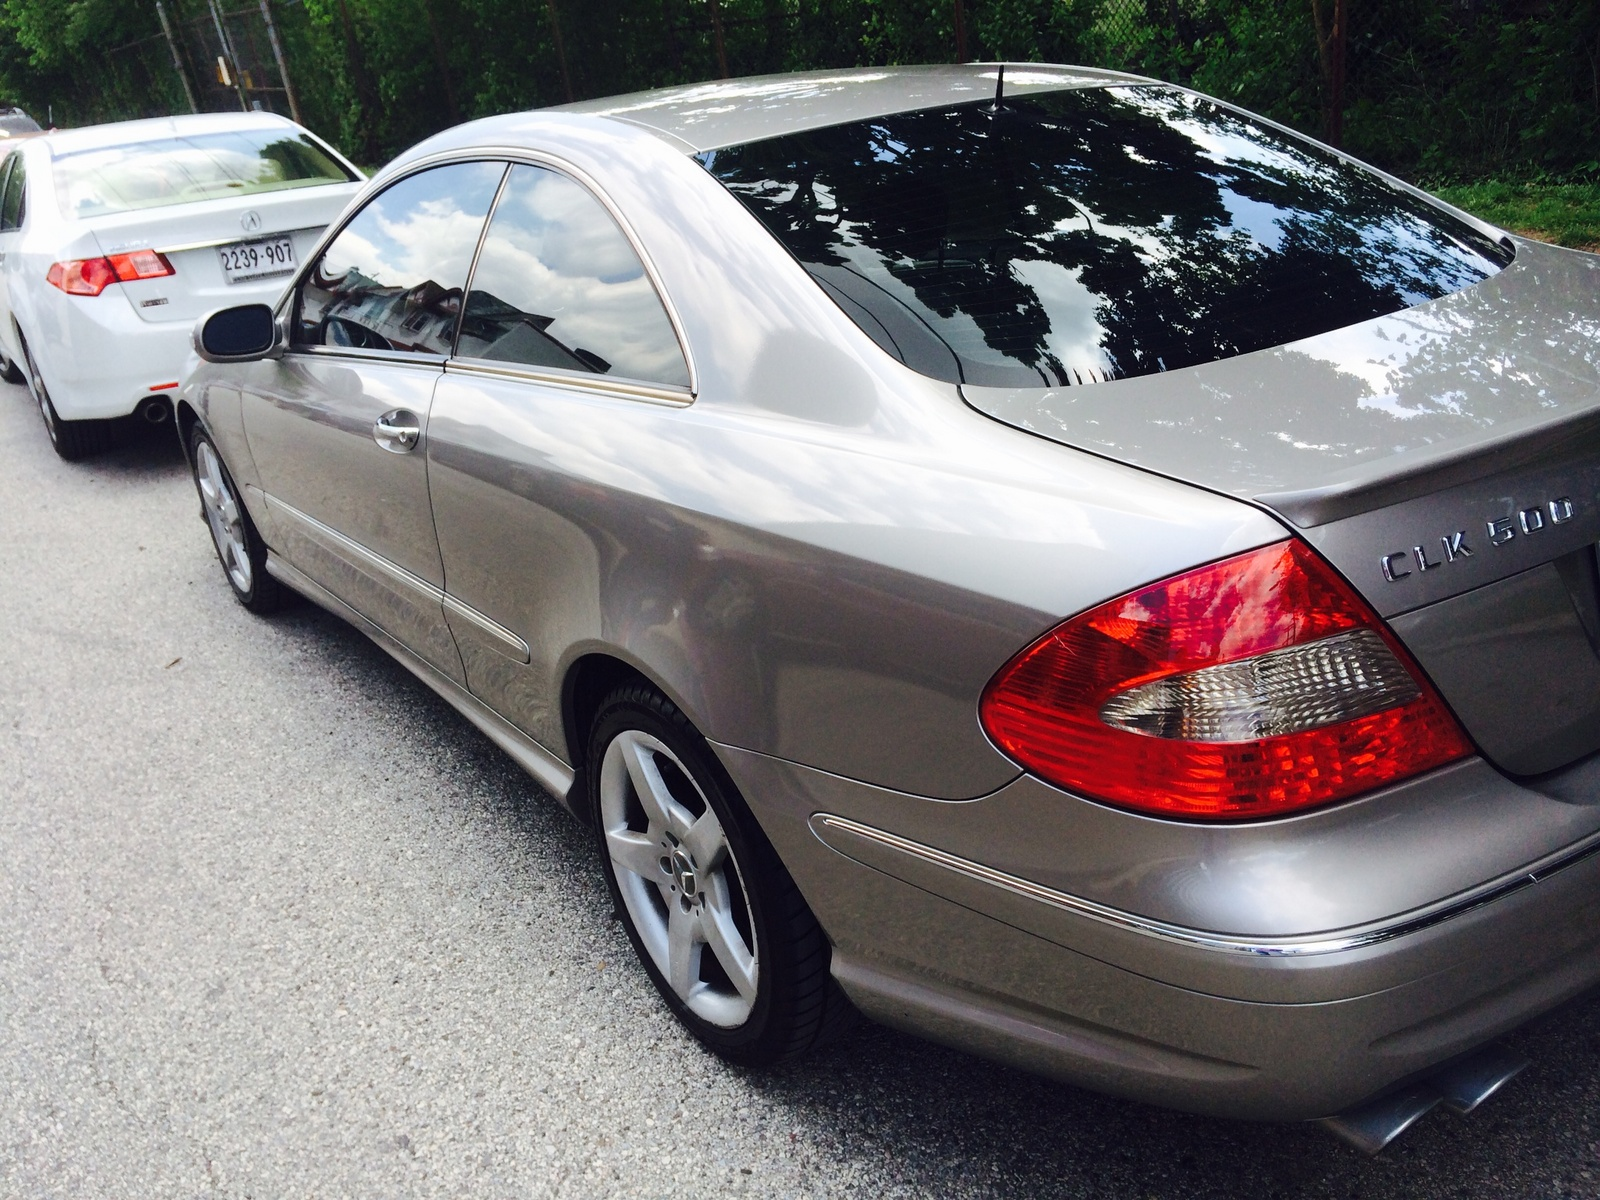 Picture of 2006 mercedes benz clk class clk500 2dr coupe for 2006 mercedes benz clk 500